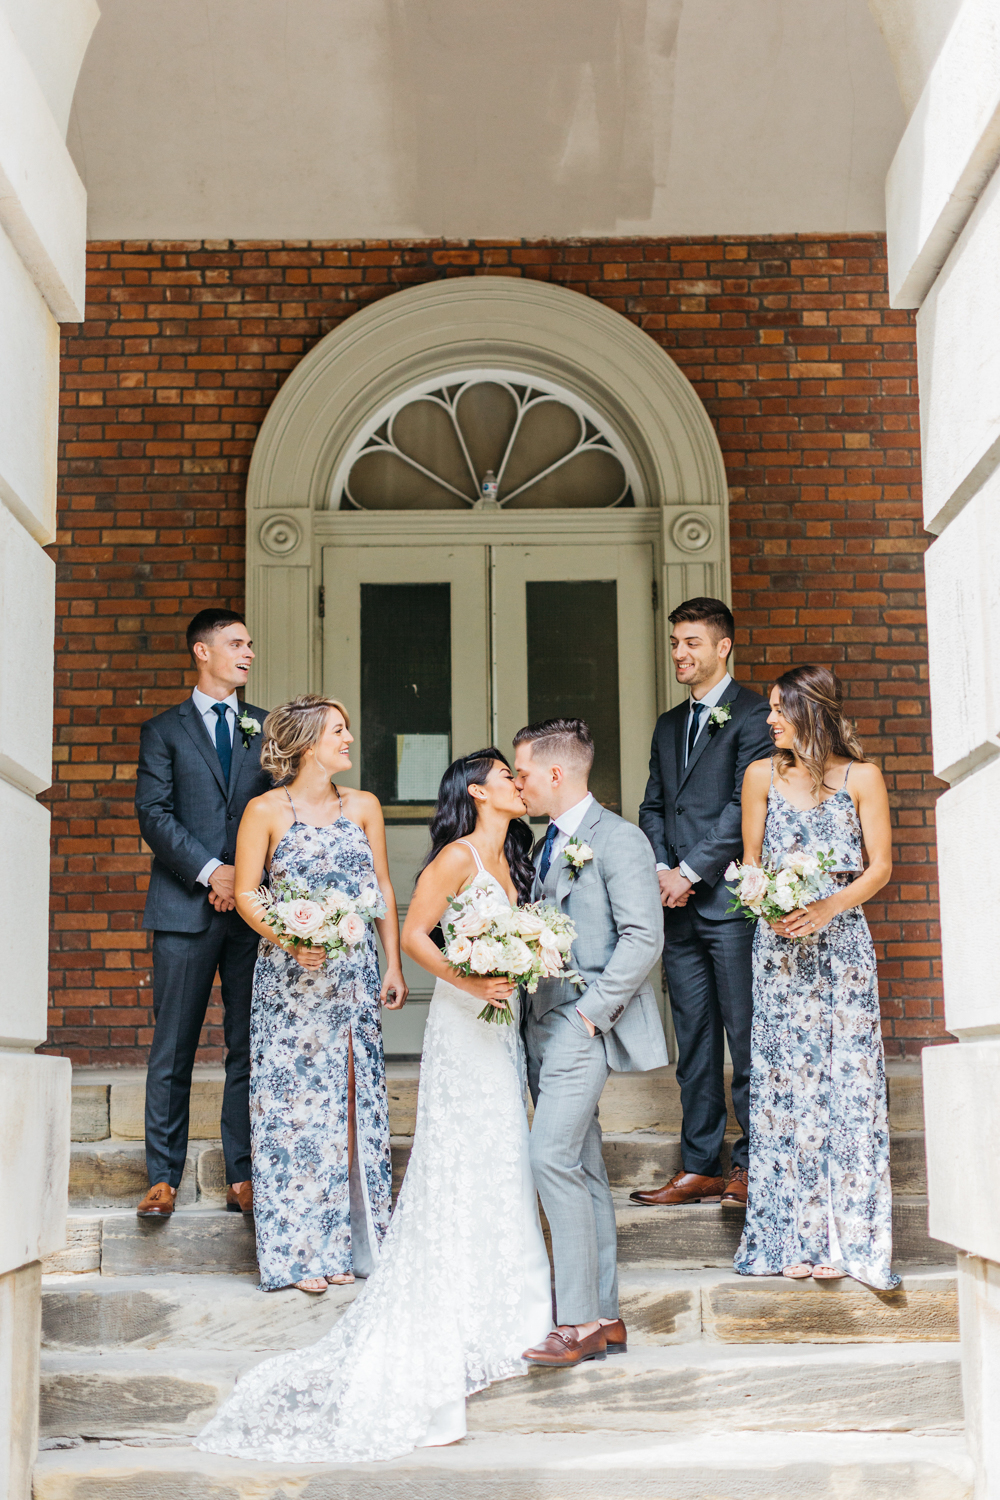 Bride and groom kissing while bridal party watches at Osgoode Hall